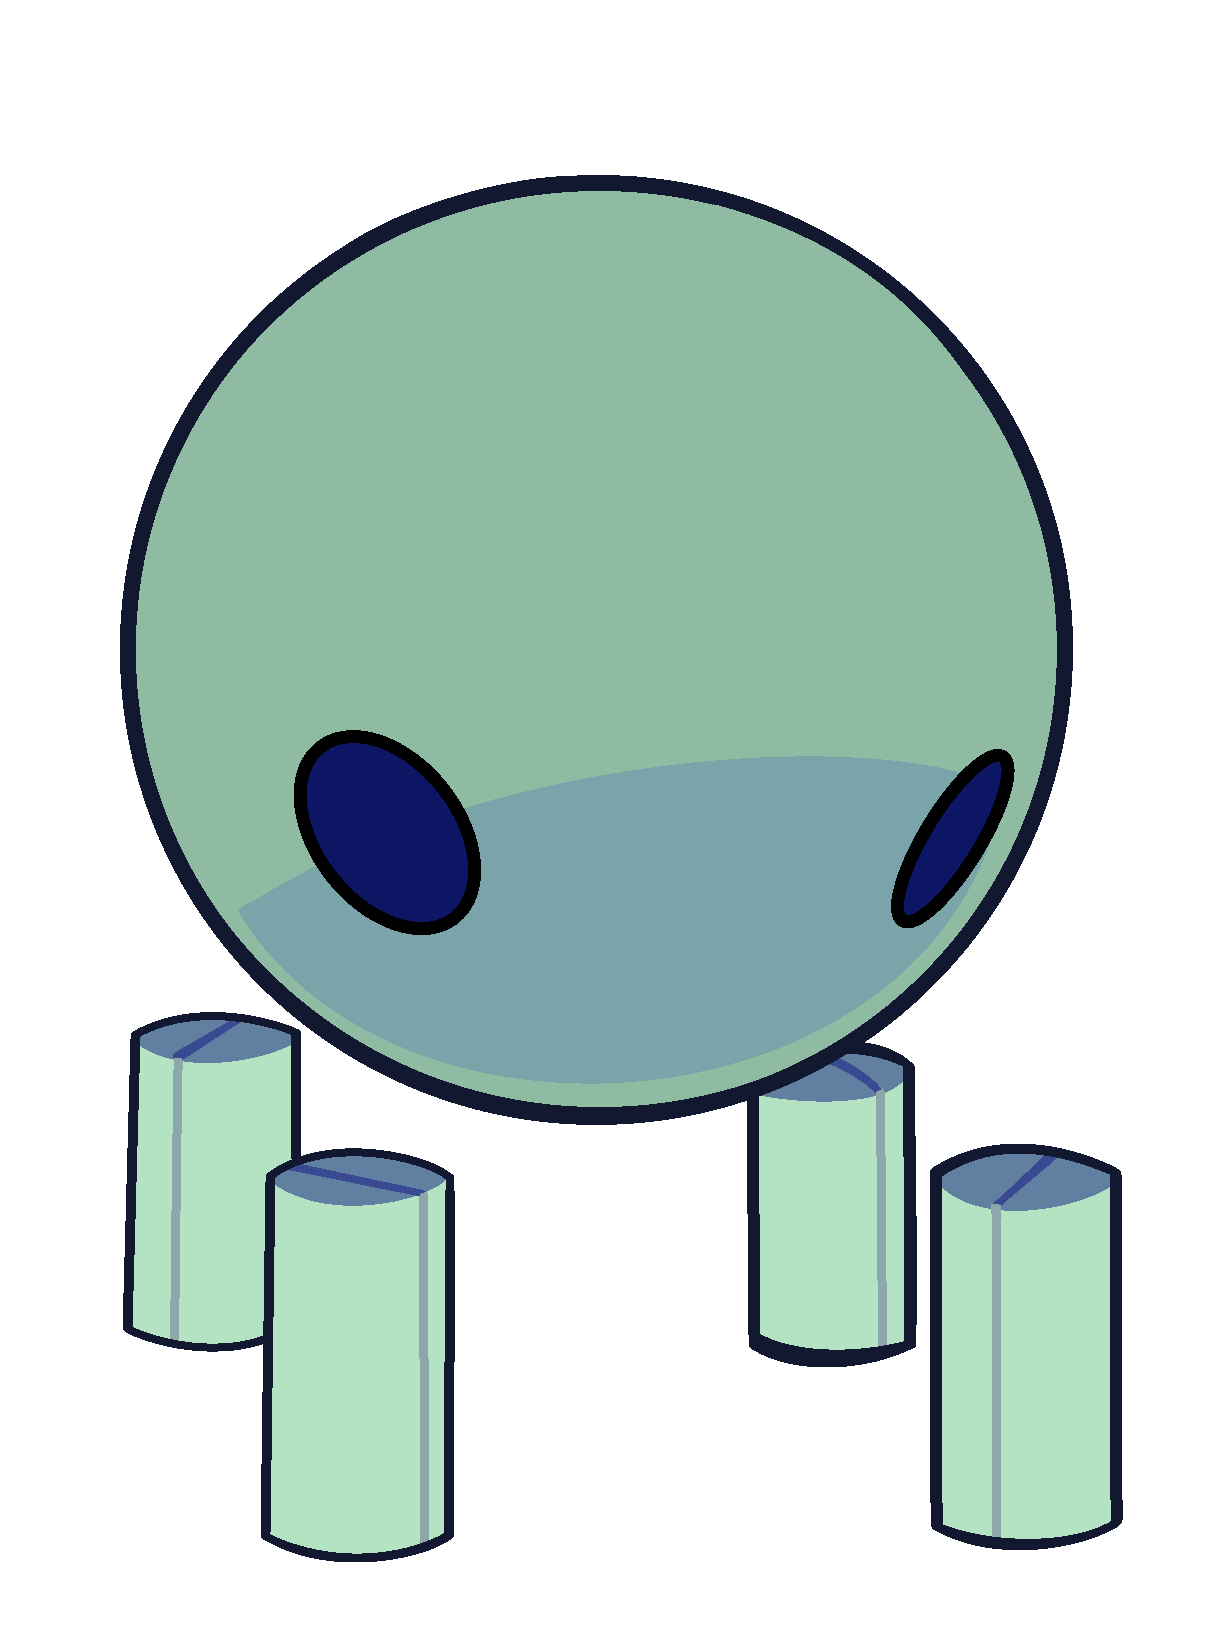 Marbles clipart small object. Flask robonoids steven universe